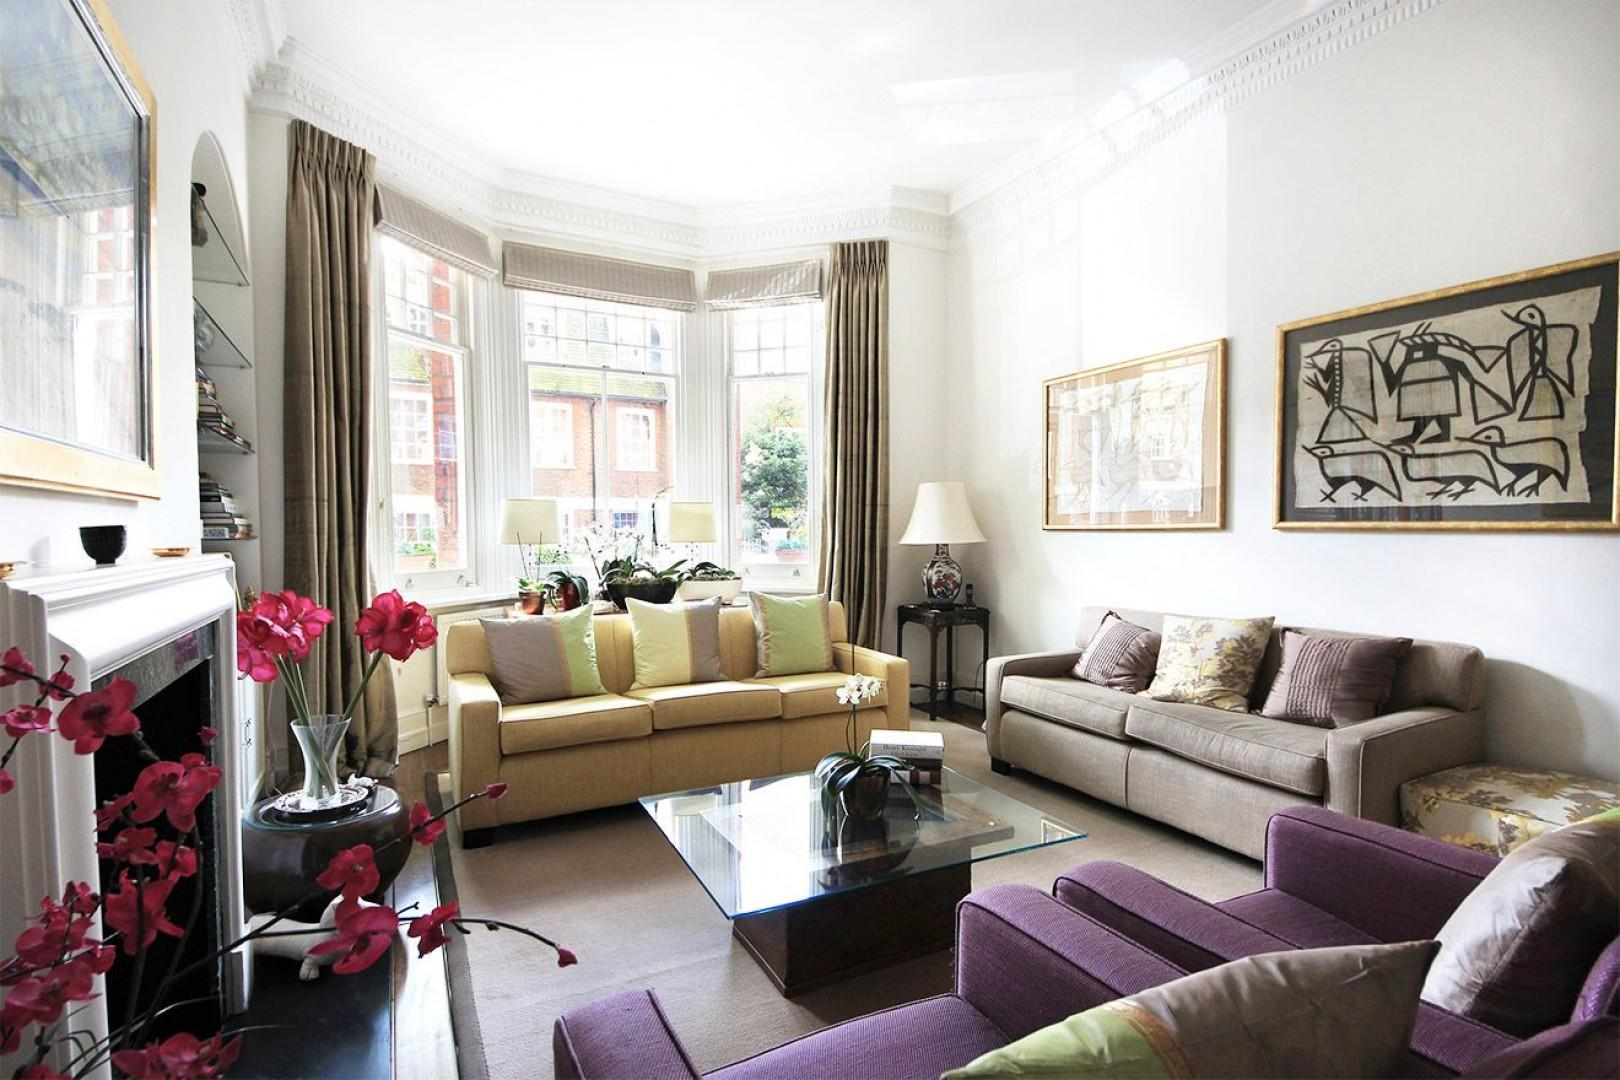 Beautifully decorated living room with large bay window